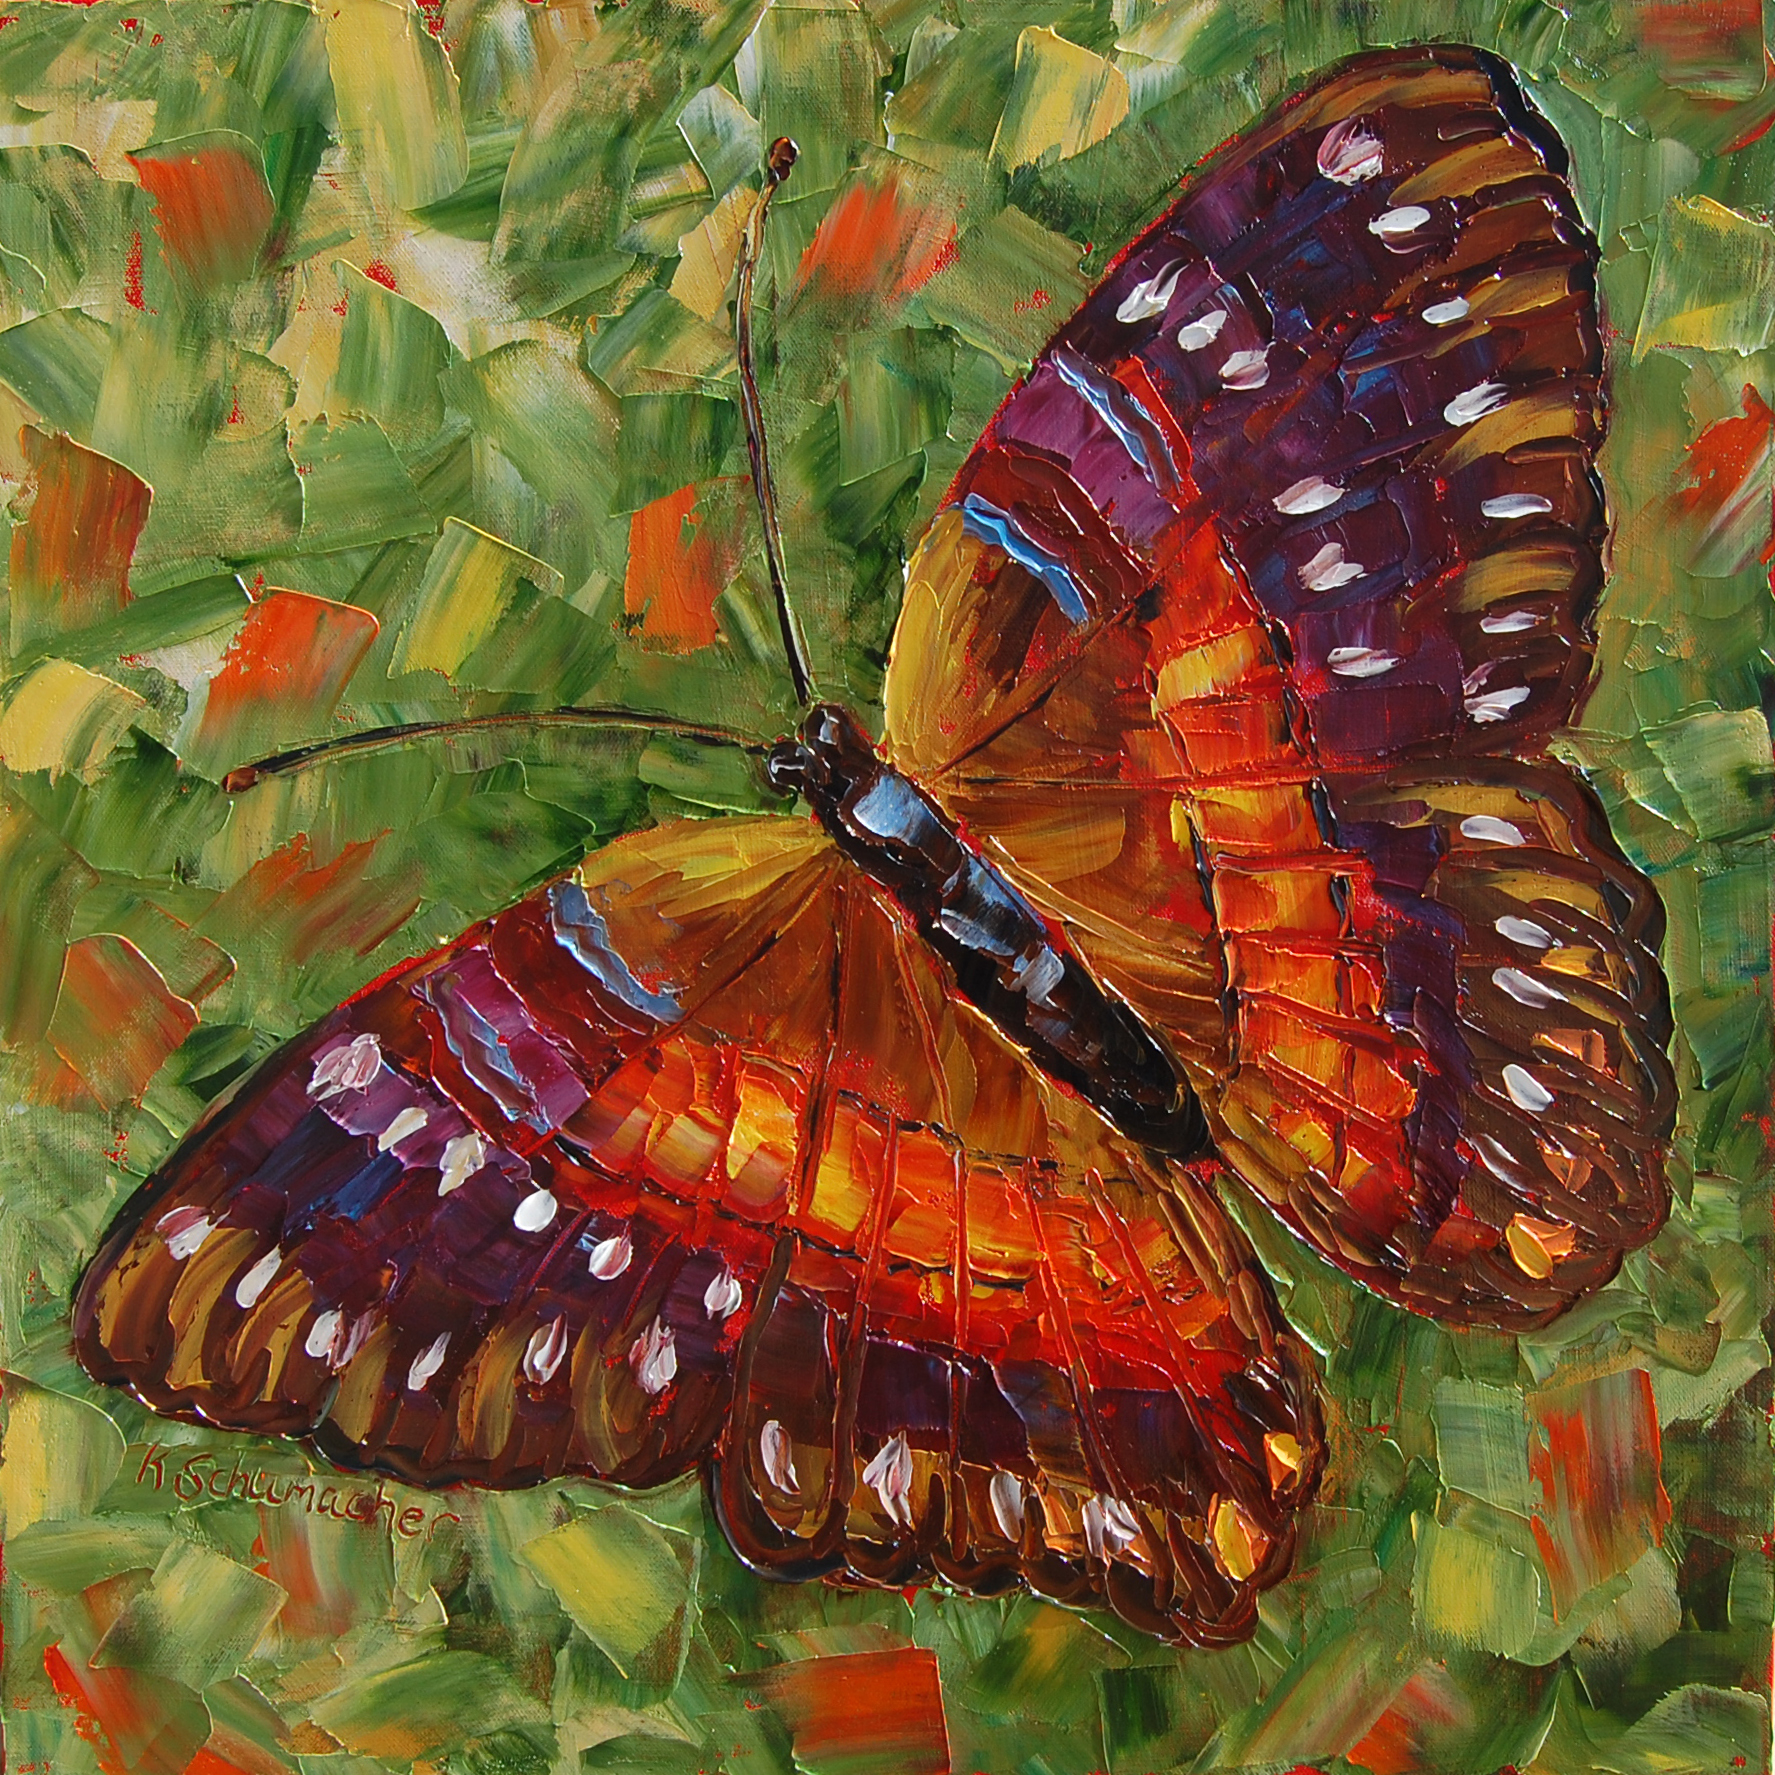 Spring Butterfly 24x24